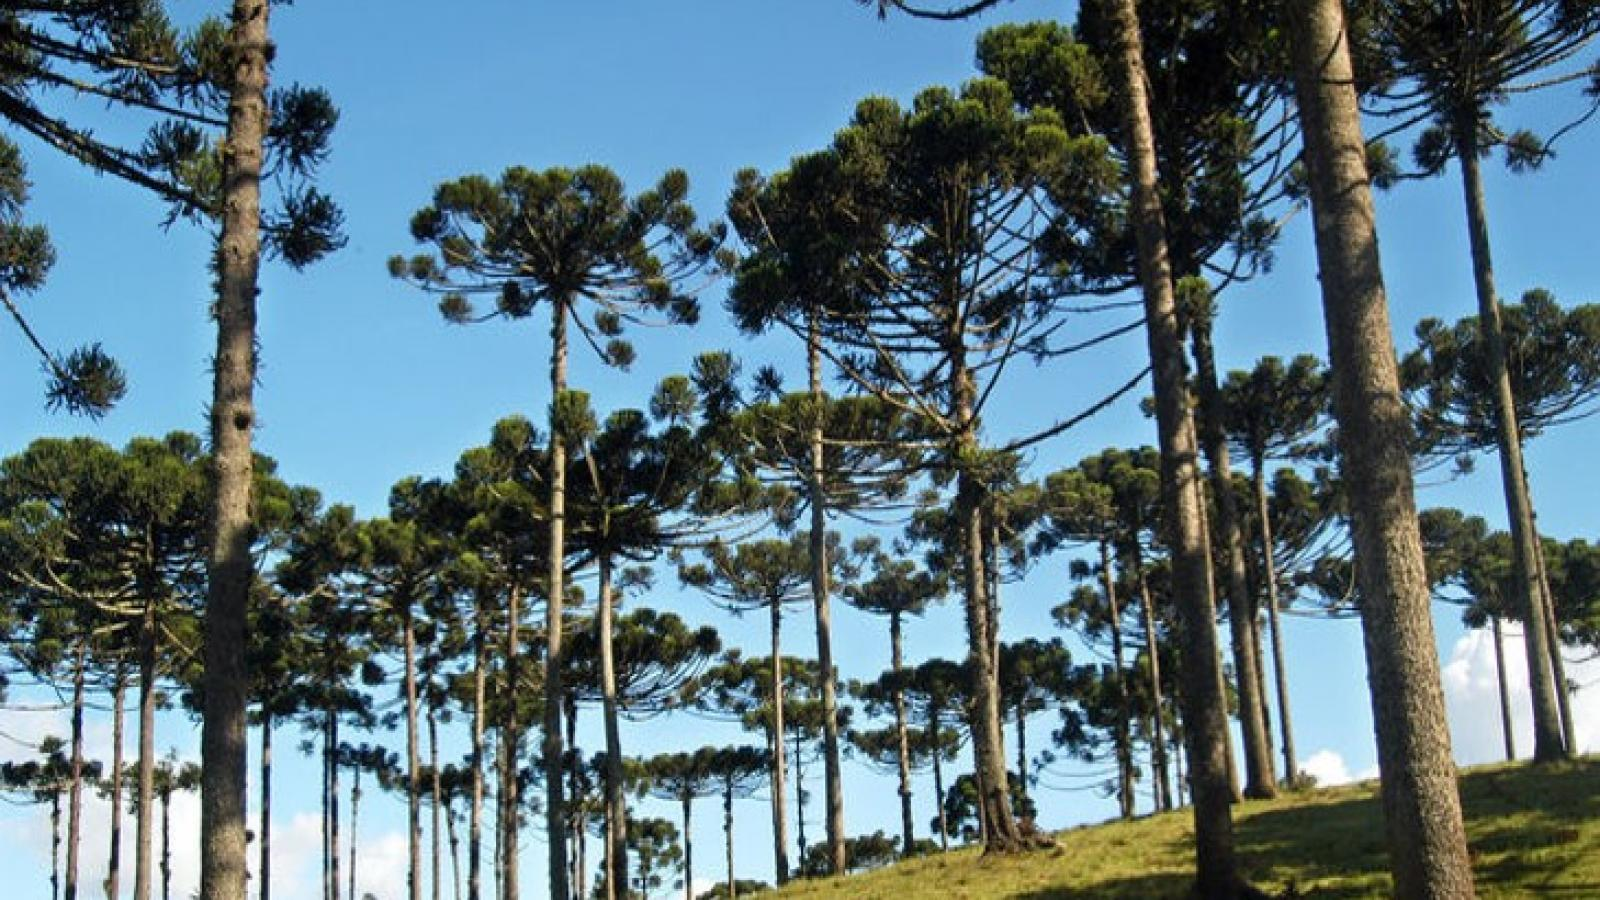 Araucaria, typical trees in Curitiba